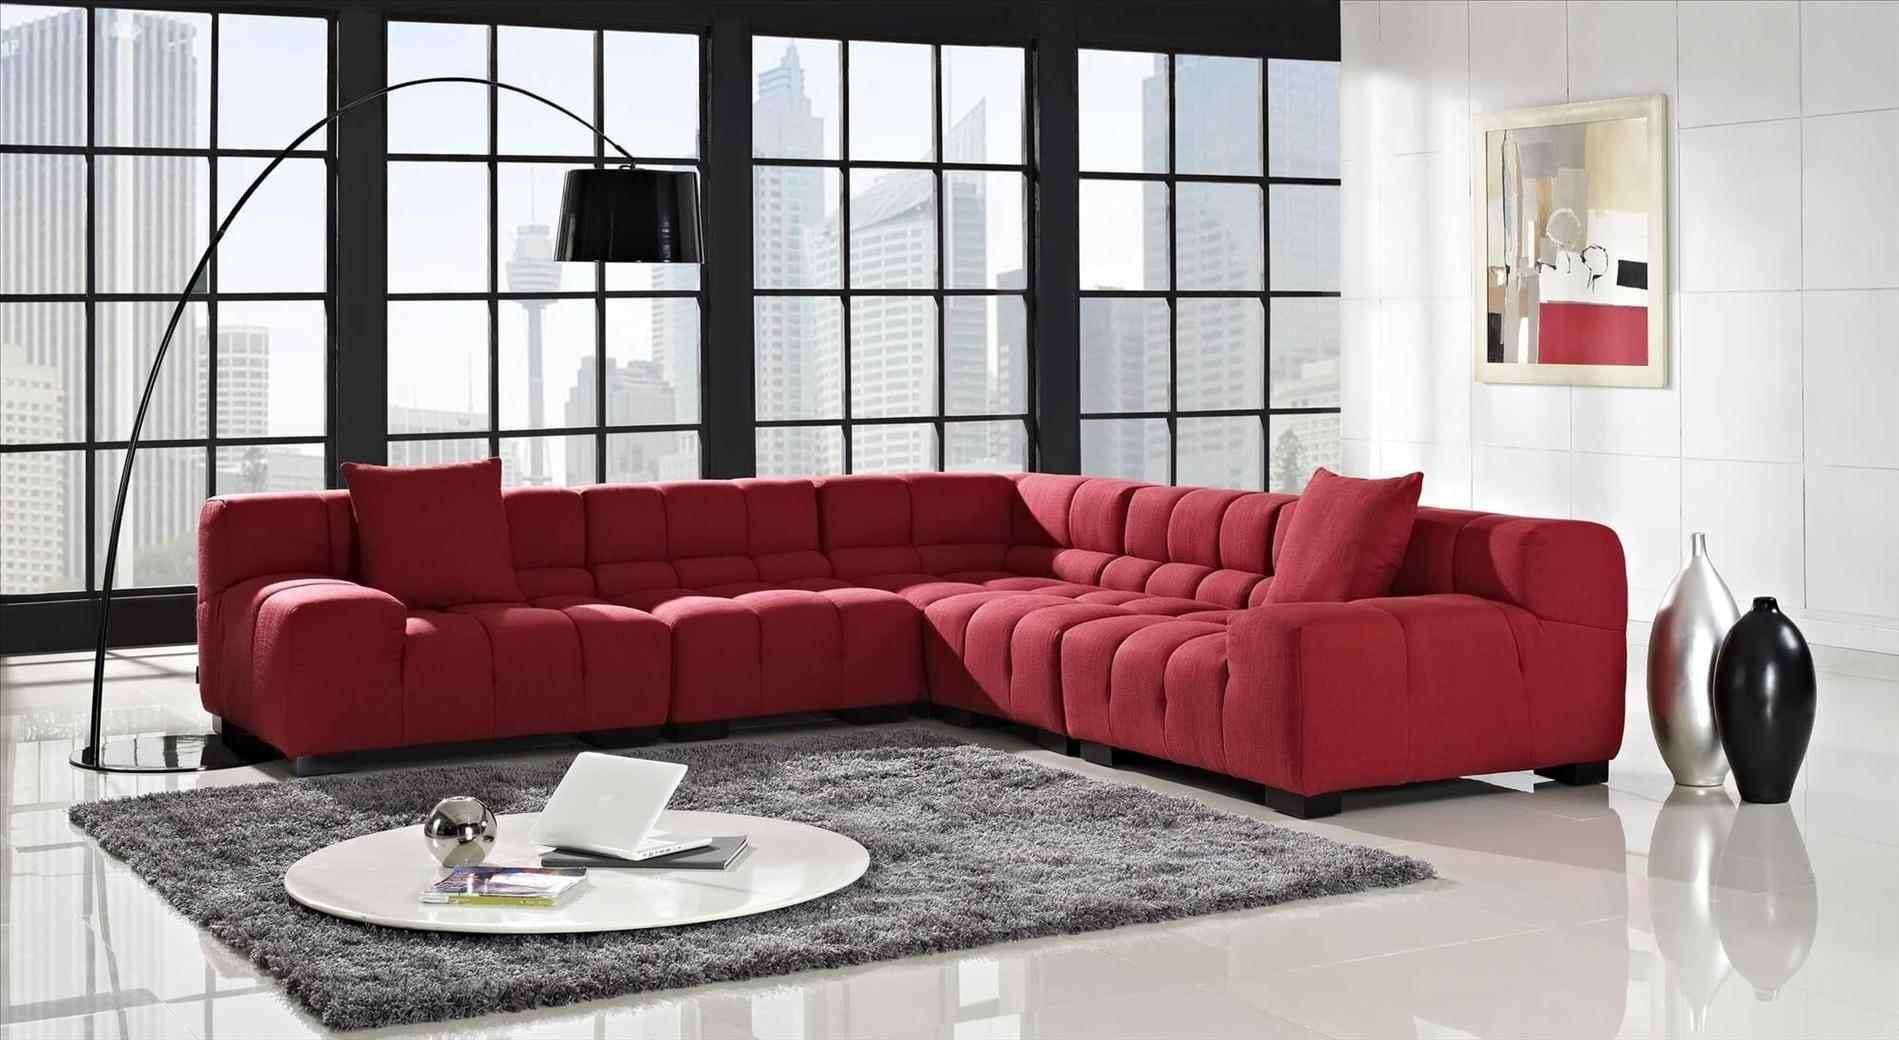 Sectional Sofas Ct | Chikara Do Reiki With Berkline Sectional Sofas (Image 16 of 20)